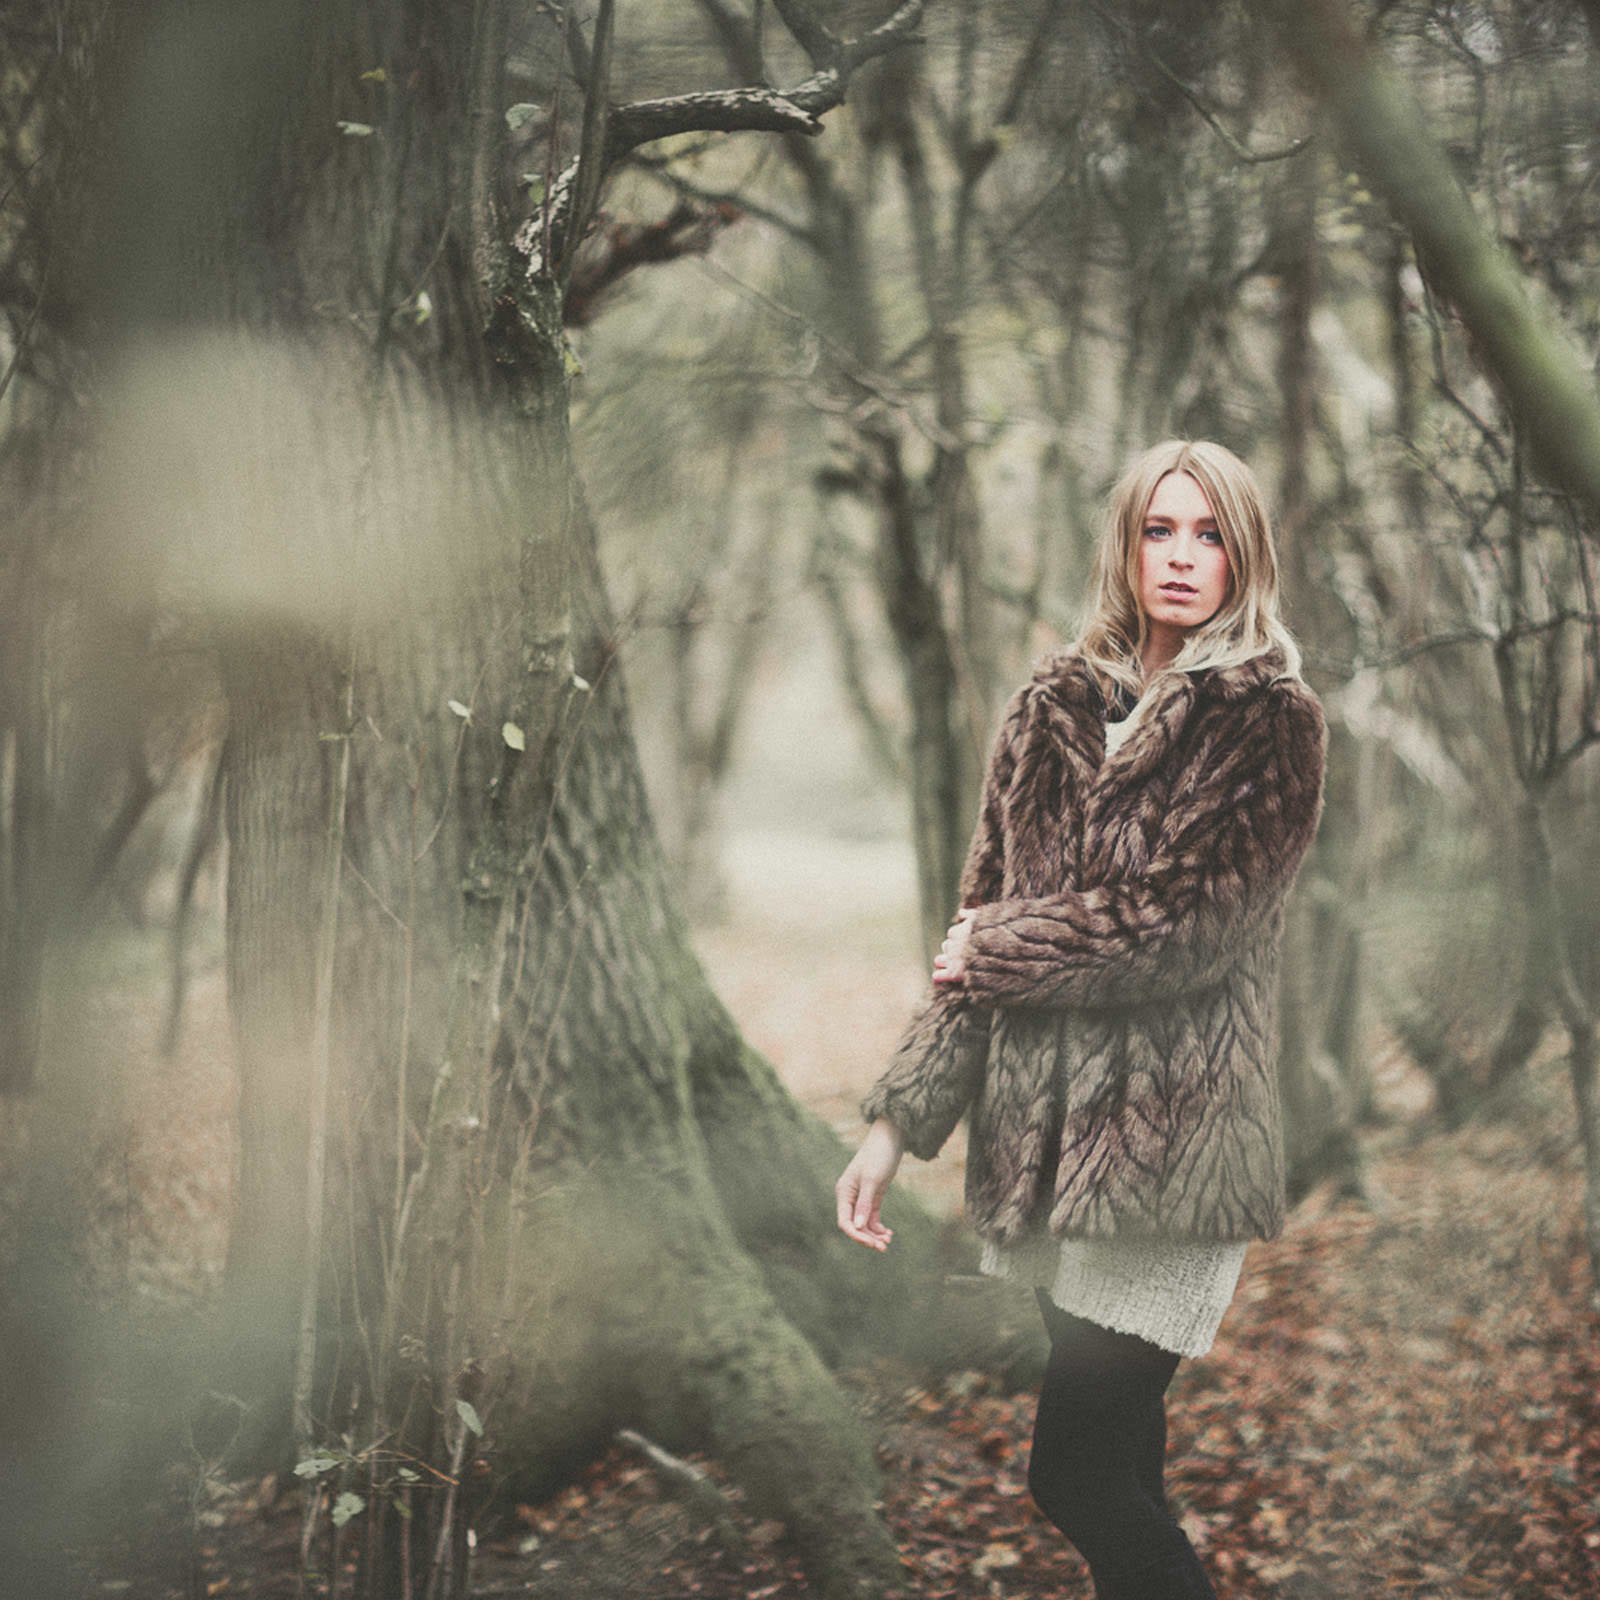 CHRIS SCUFFINS